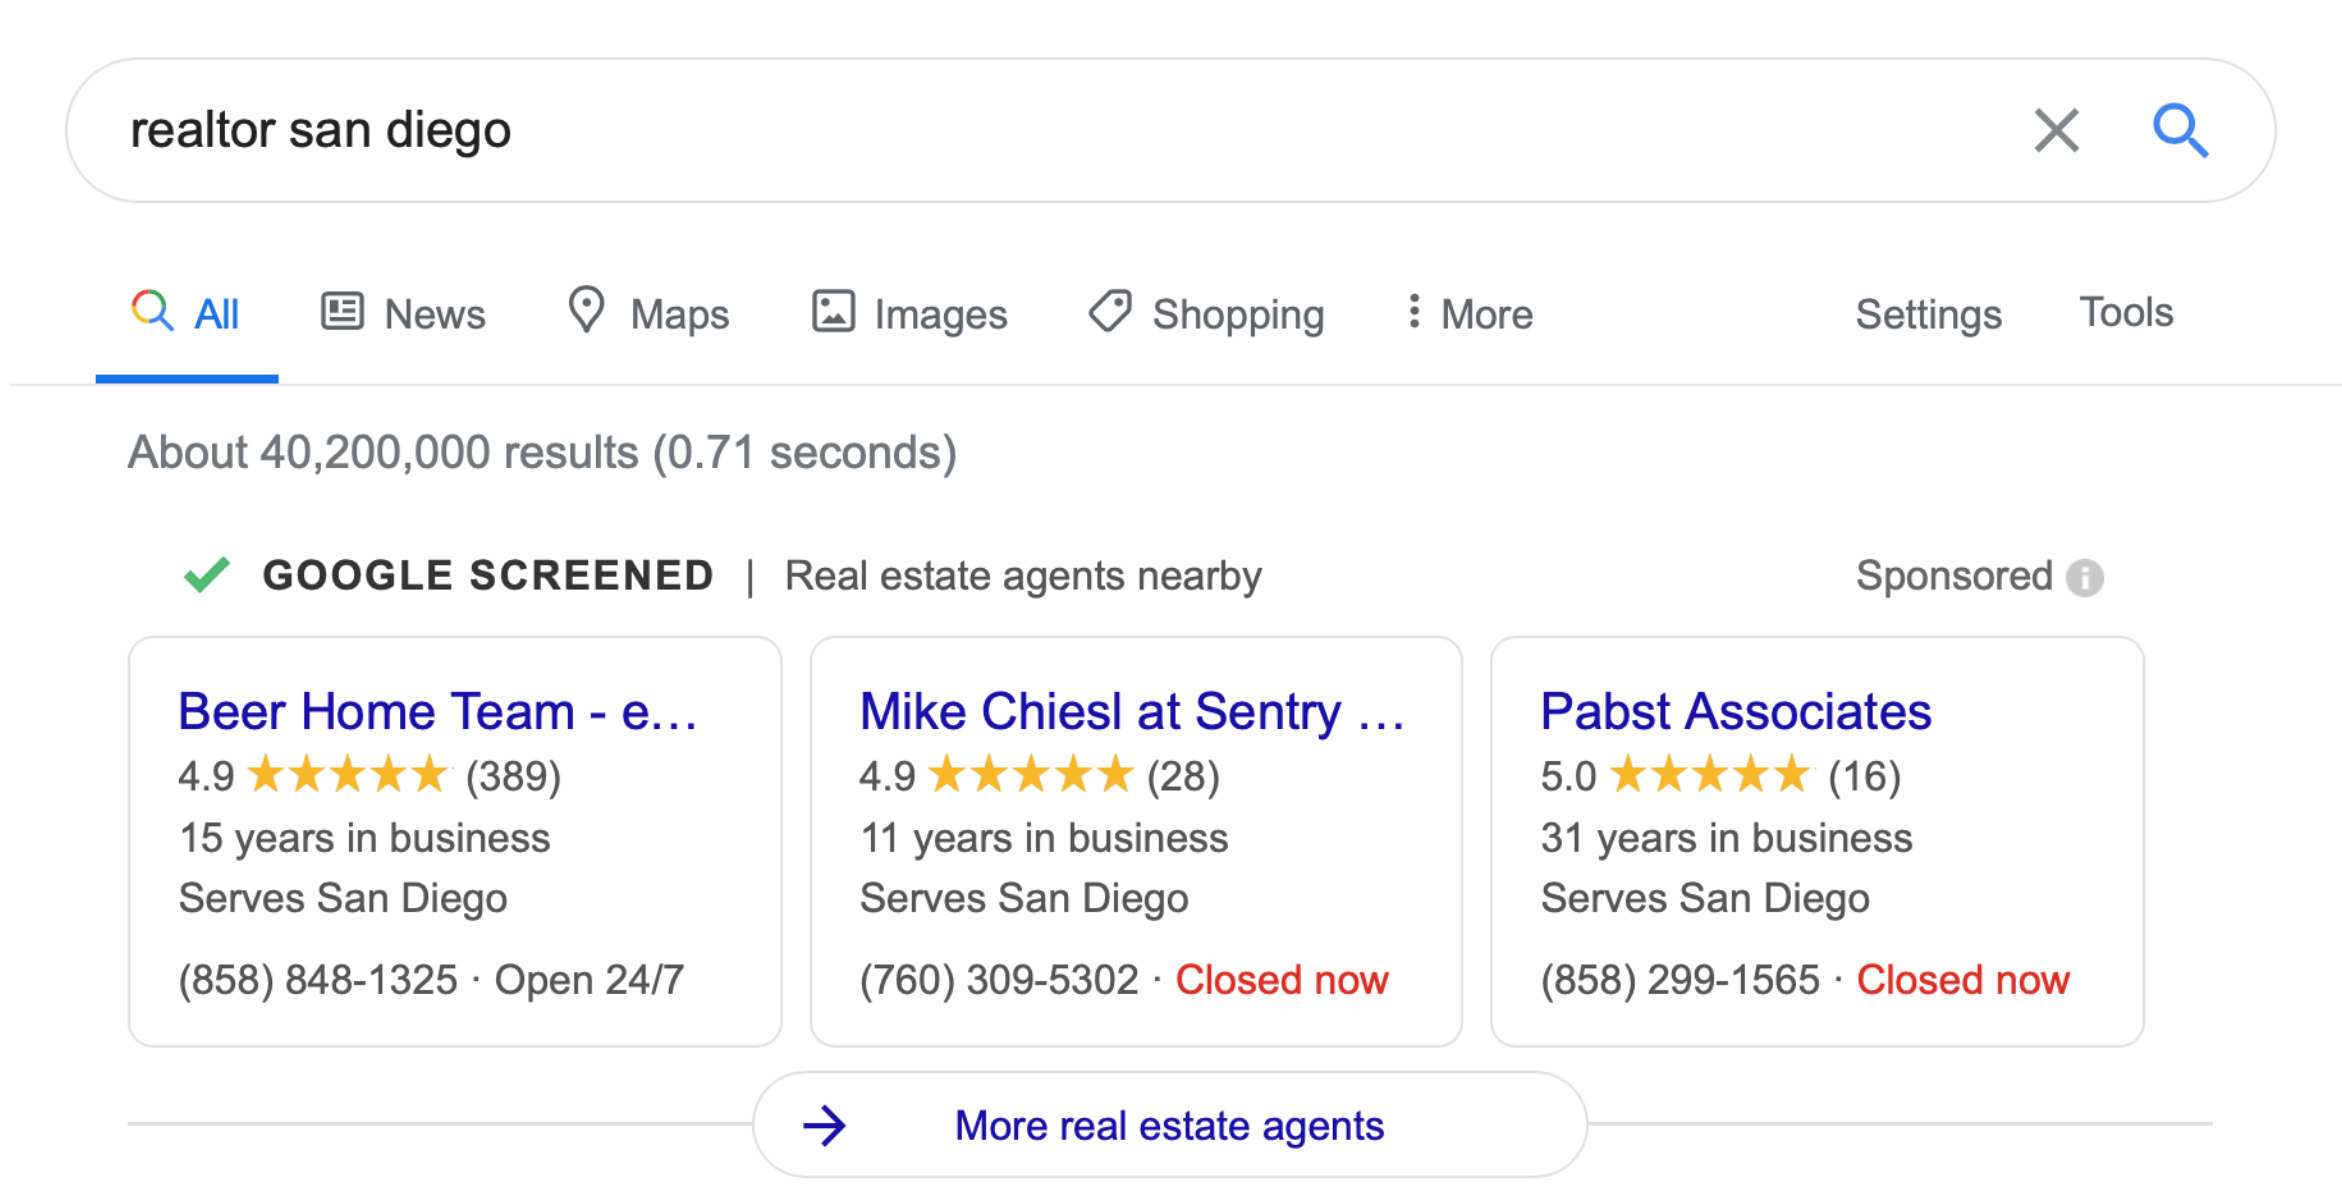 Google screened ads for real estate agents